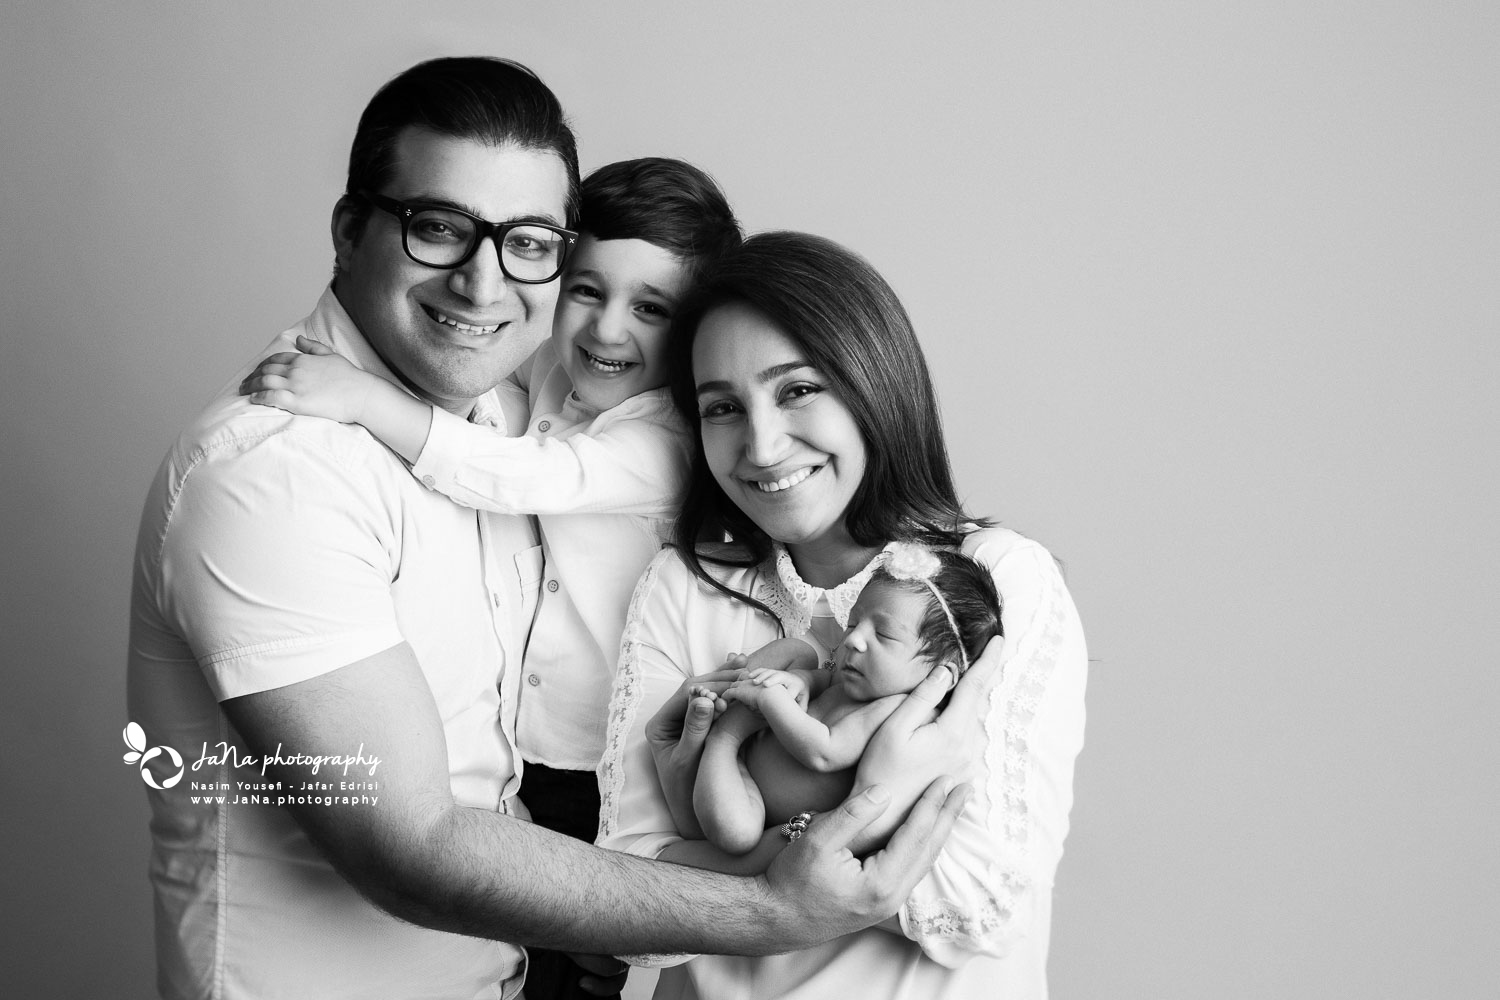 family newborn photography - north vancouver - jana - sibling brother - black and white